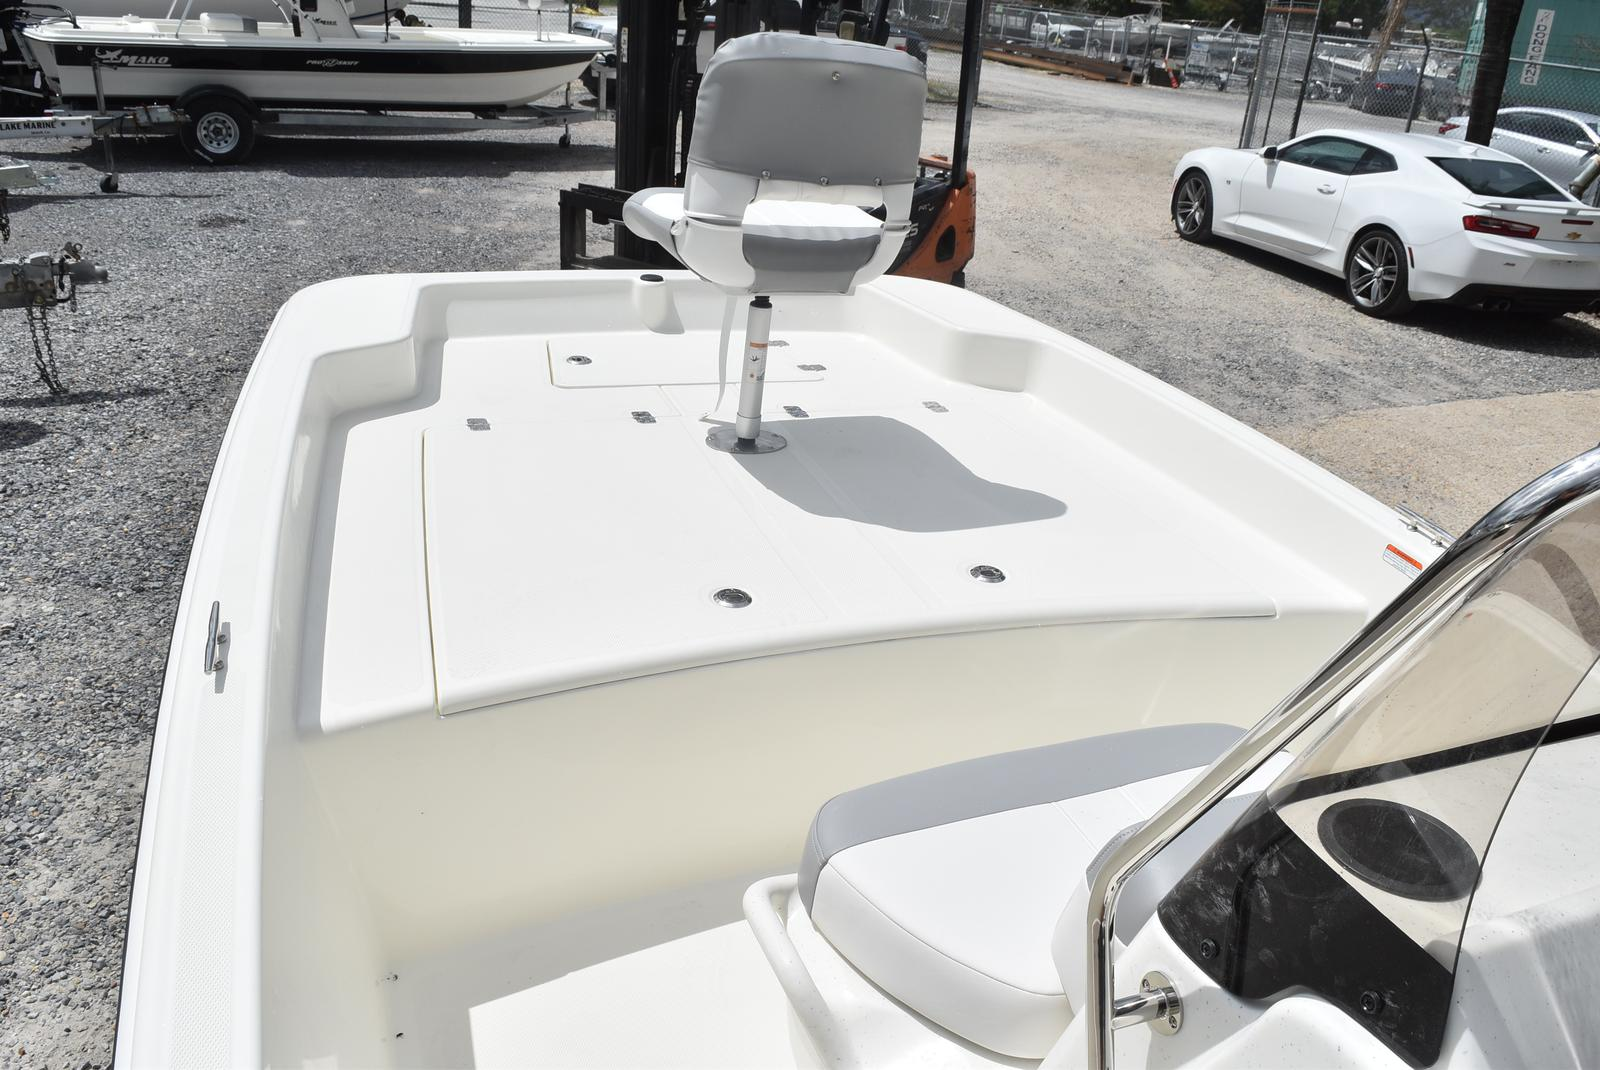 2020 Mako boat for sale, model of the boat is Pro Skiff 17, 75 ELPT & Image # 438 of 702